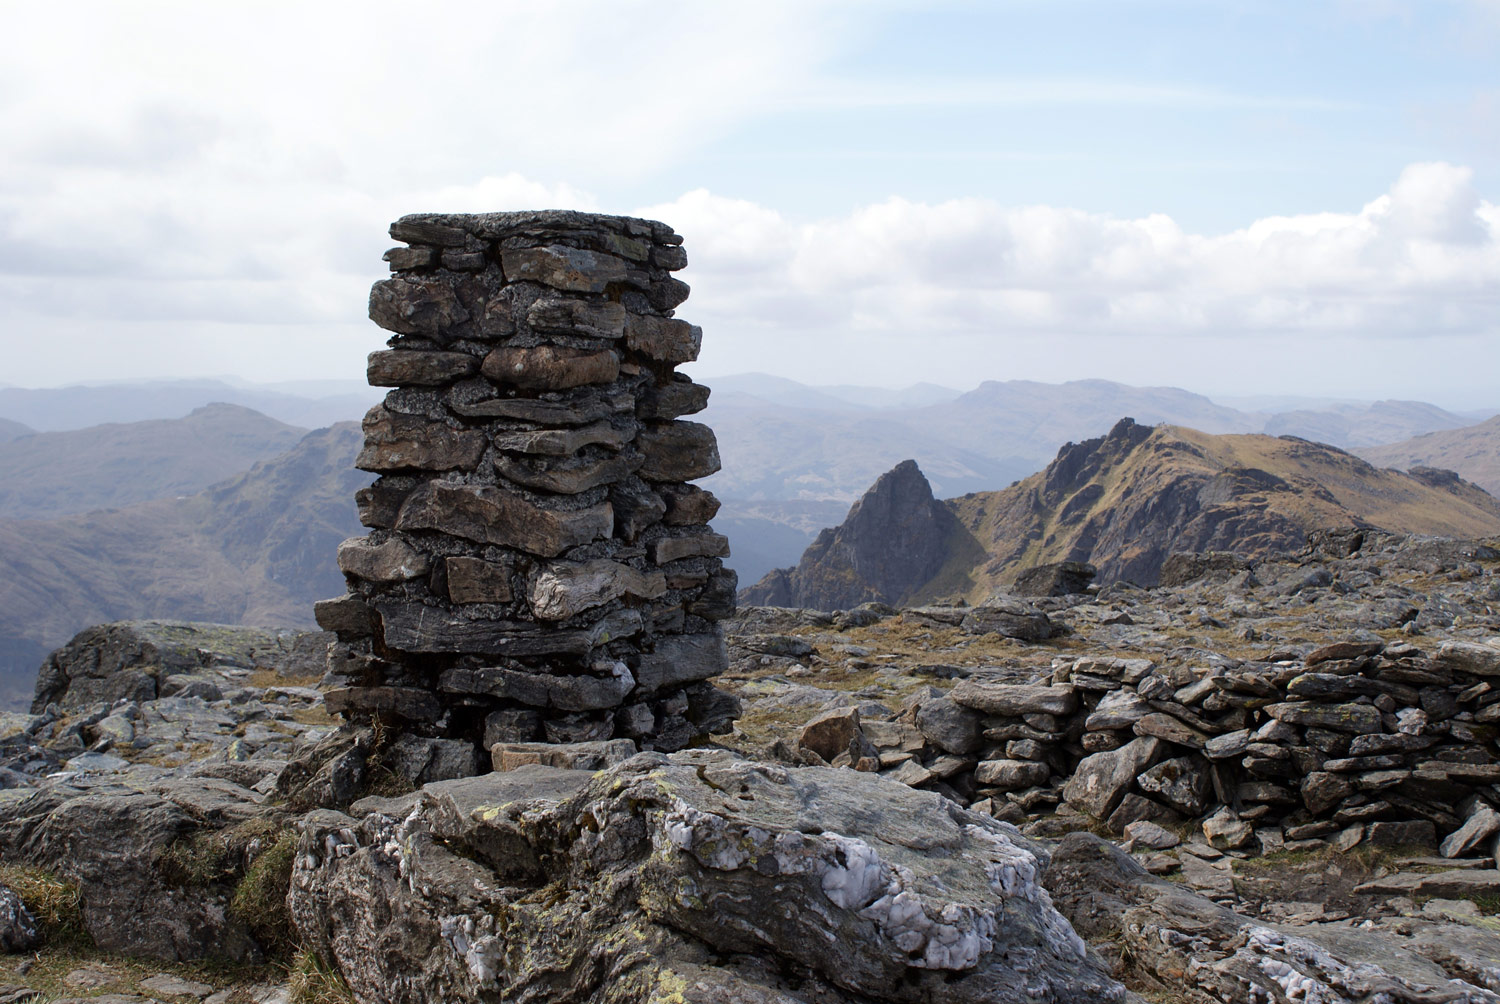 Trig point overlooking The Cobbler.